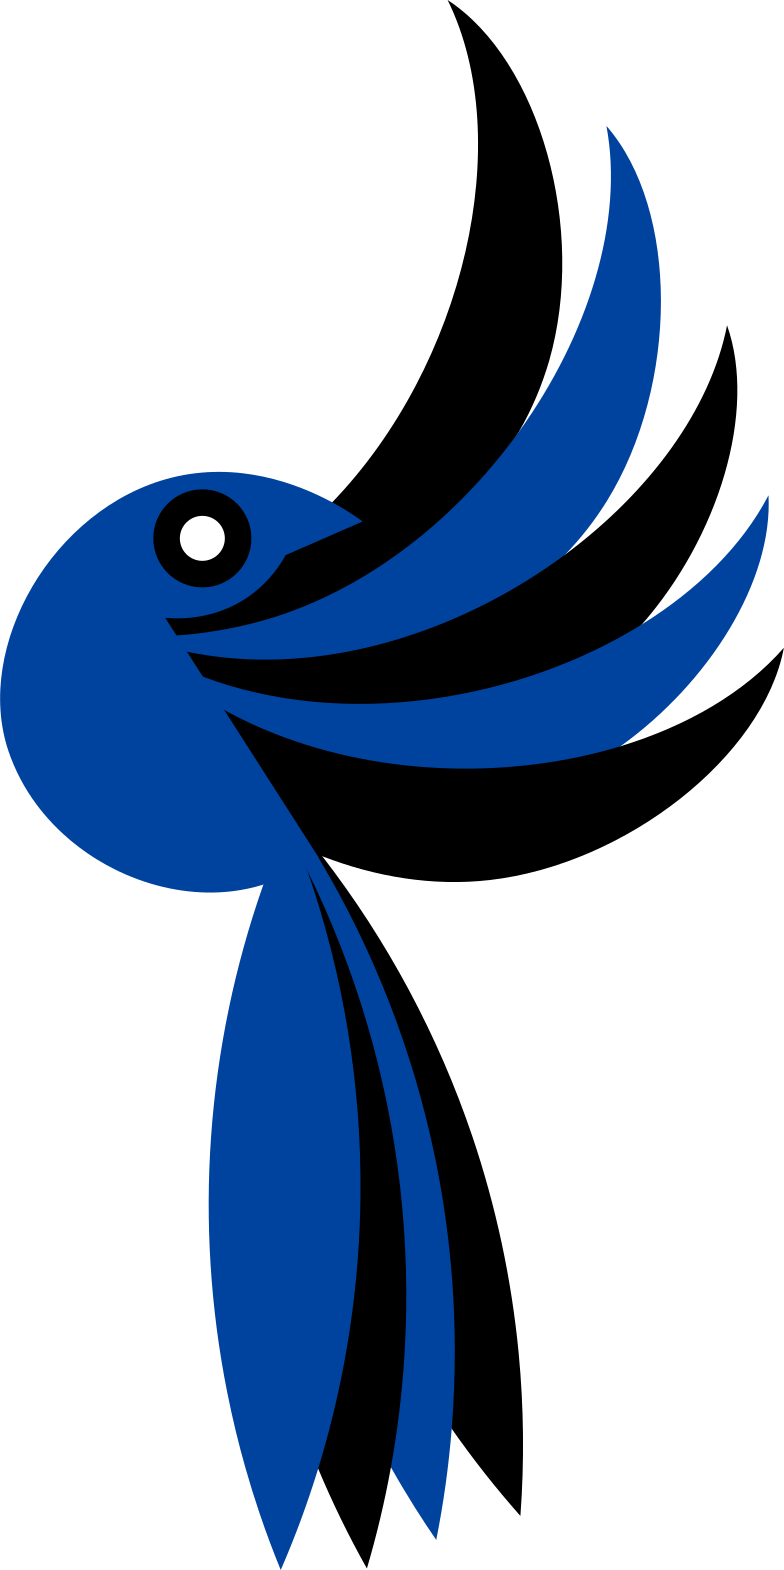 style blue bird Vector images in PNG and SVG | Icons8 Illustrations